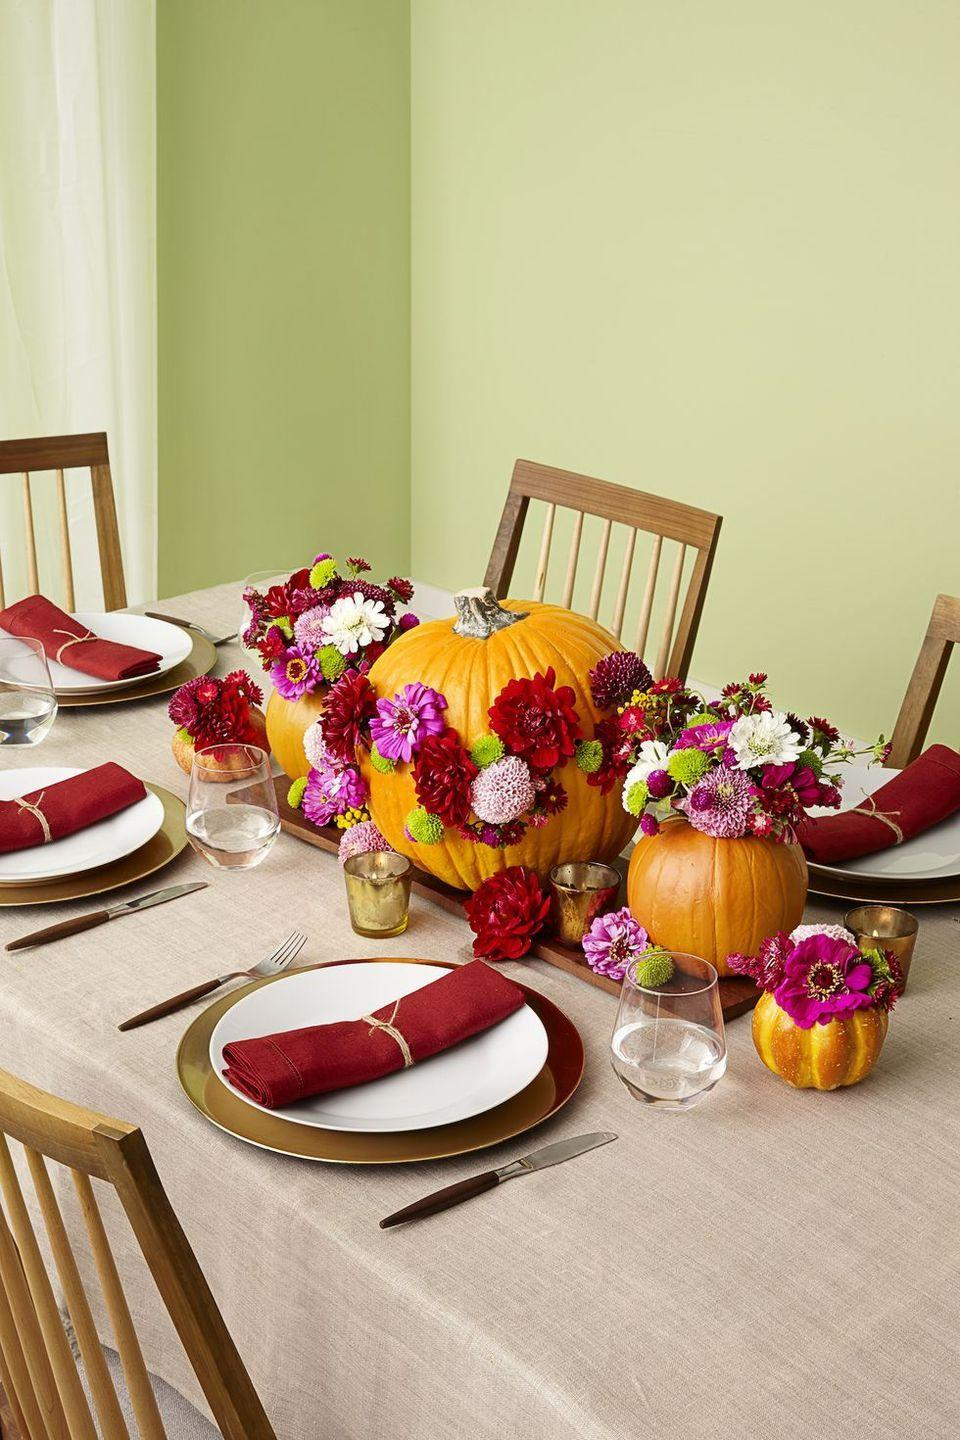 <p>Apply faux flowers to an orange pumpkin to create an inspiring table centerpiece. Finish the design with small pumpkin vases filled with the same flowers.<br></p>